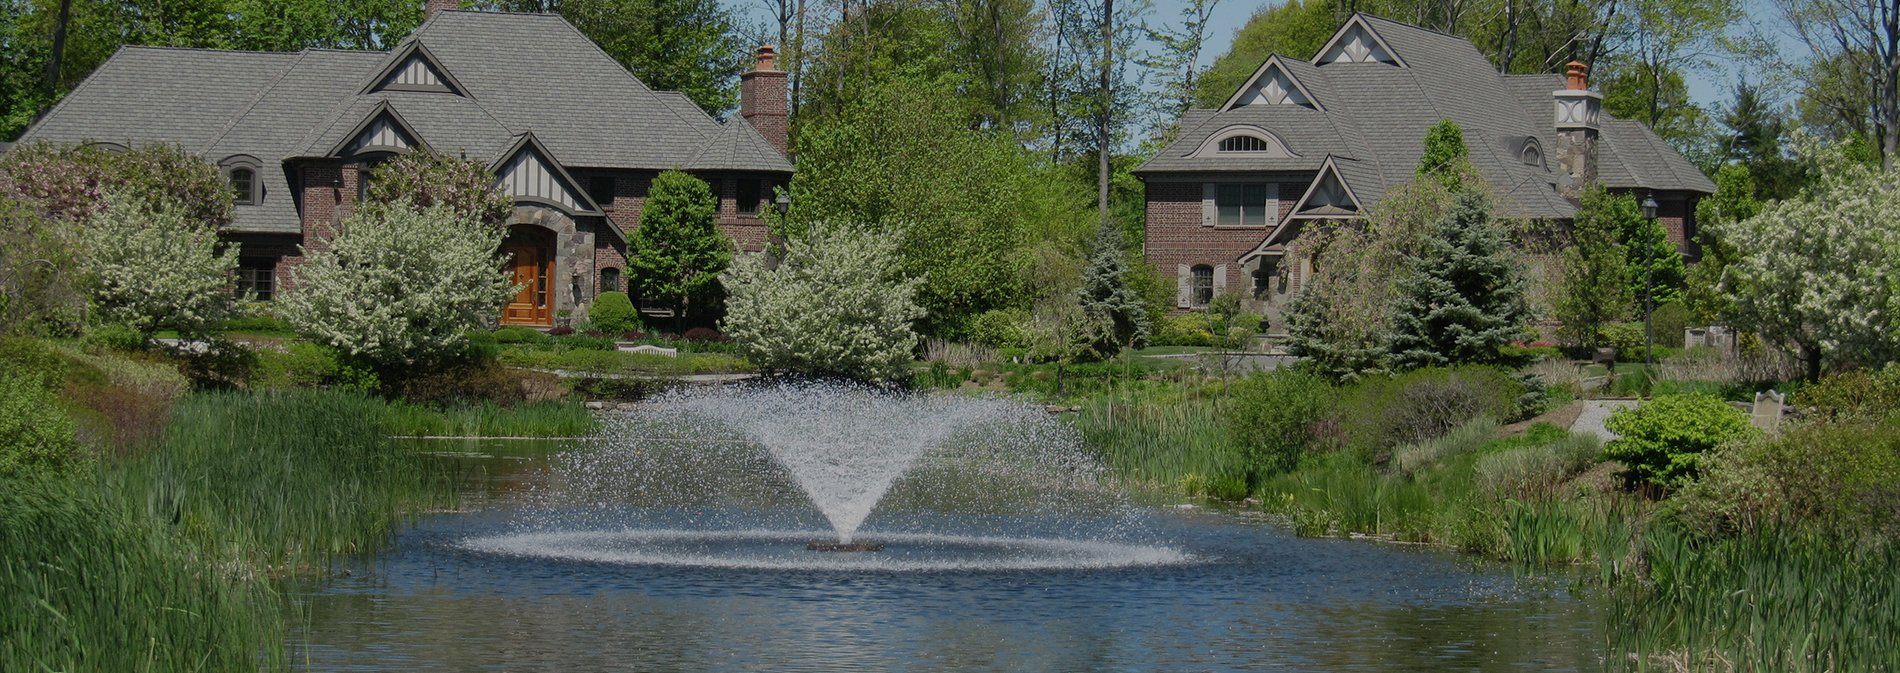 Kasco Marine Series fountain